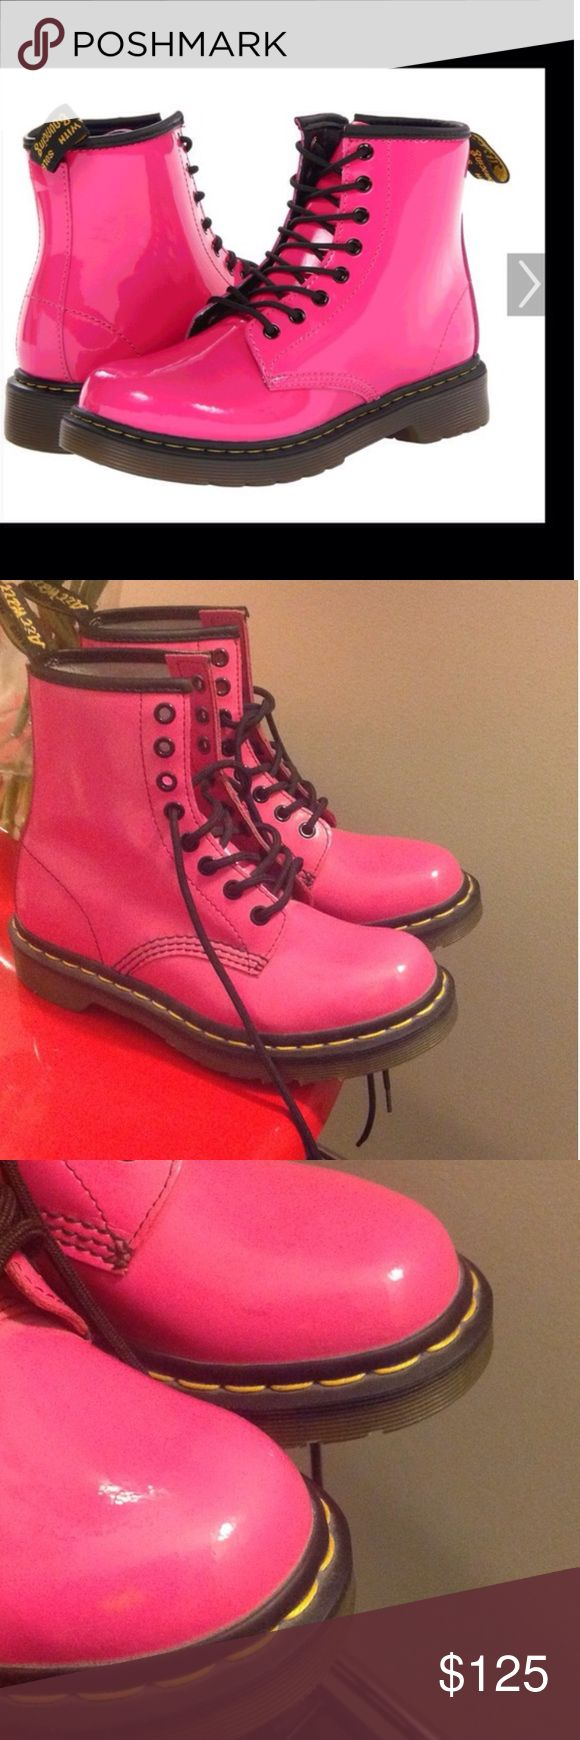 +MAKE AN OFFER+ $250 RETAIL LEATHER RARE MR.MARTEN +RARE HOT PINK DR. MARTEN $220.00 PLUS TAX RETAIL PATENT LEATHER BOOTS WOMENS SIZE 5+ ALMOST UNWORN FLAWLESS CONDITION, JUDG WORN 1x FOR 3hrs A MARK OR TWO IN THE FRONT, BOTTOMS LOOK UNWORN. THEYRE A MUST HAVE FOR EVERY FASHIONISTA. +++PRICED TO SELL SAME DAY, OFFERS WELCOME THROUGH THE OFFER OPTION, NO TRADES OR HOLDS+++ Dr. Martens Shoes Ankle Boots & Booties